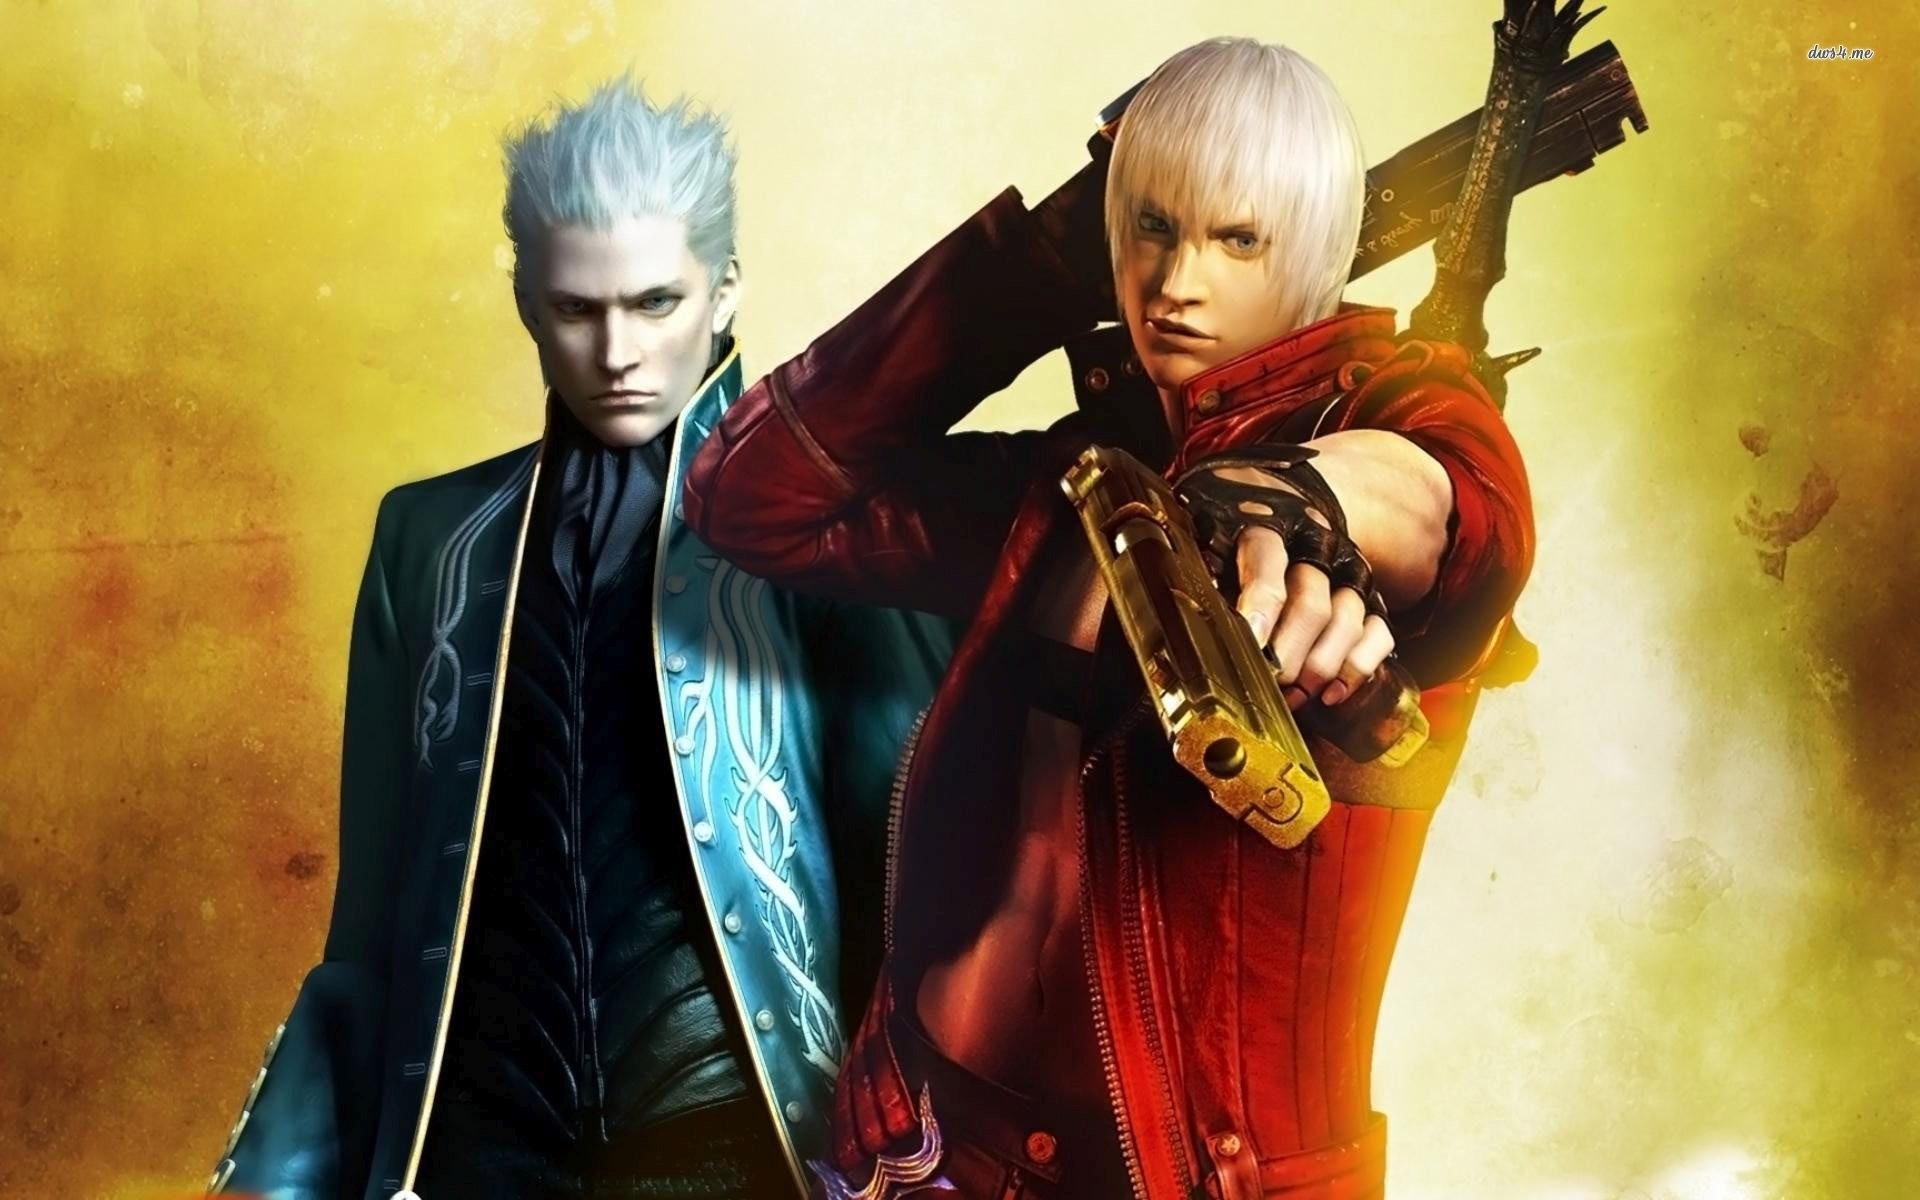 Devil may cry 3 lady wallpaper engine | download wallpaper engine.